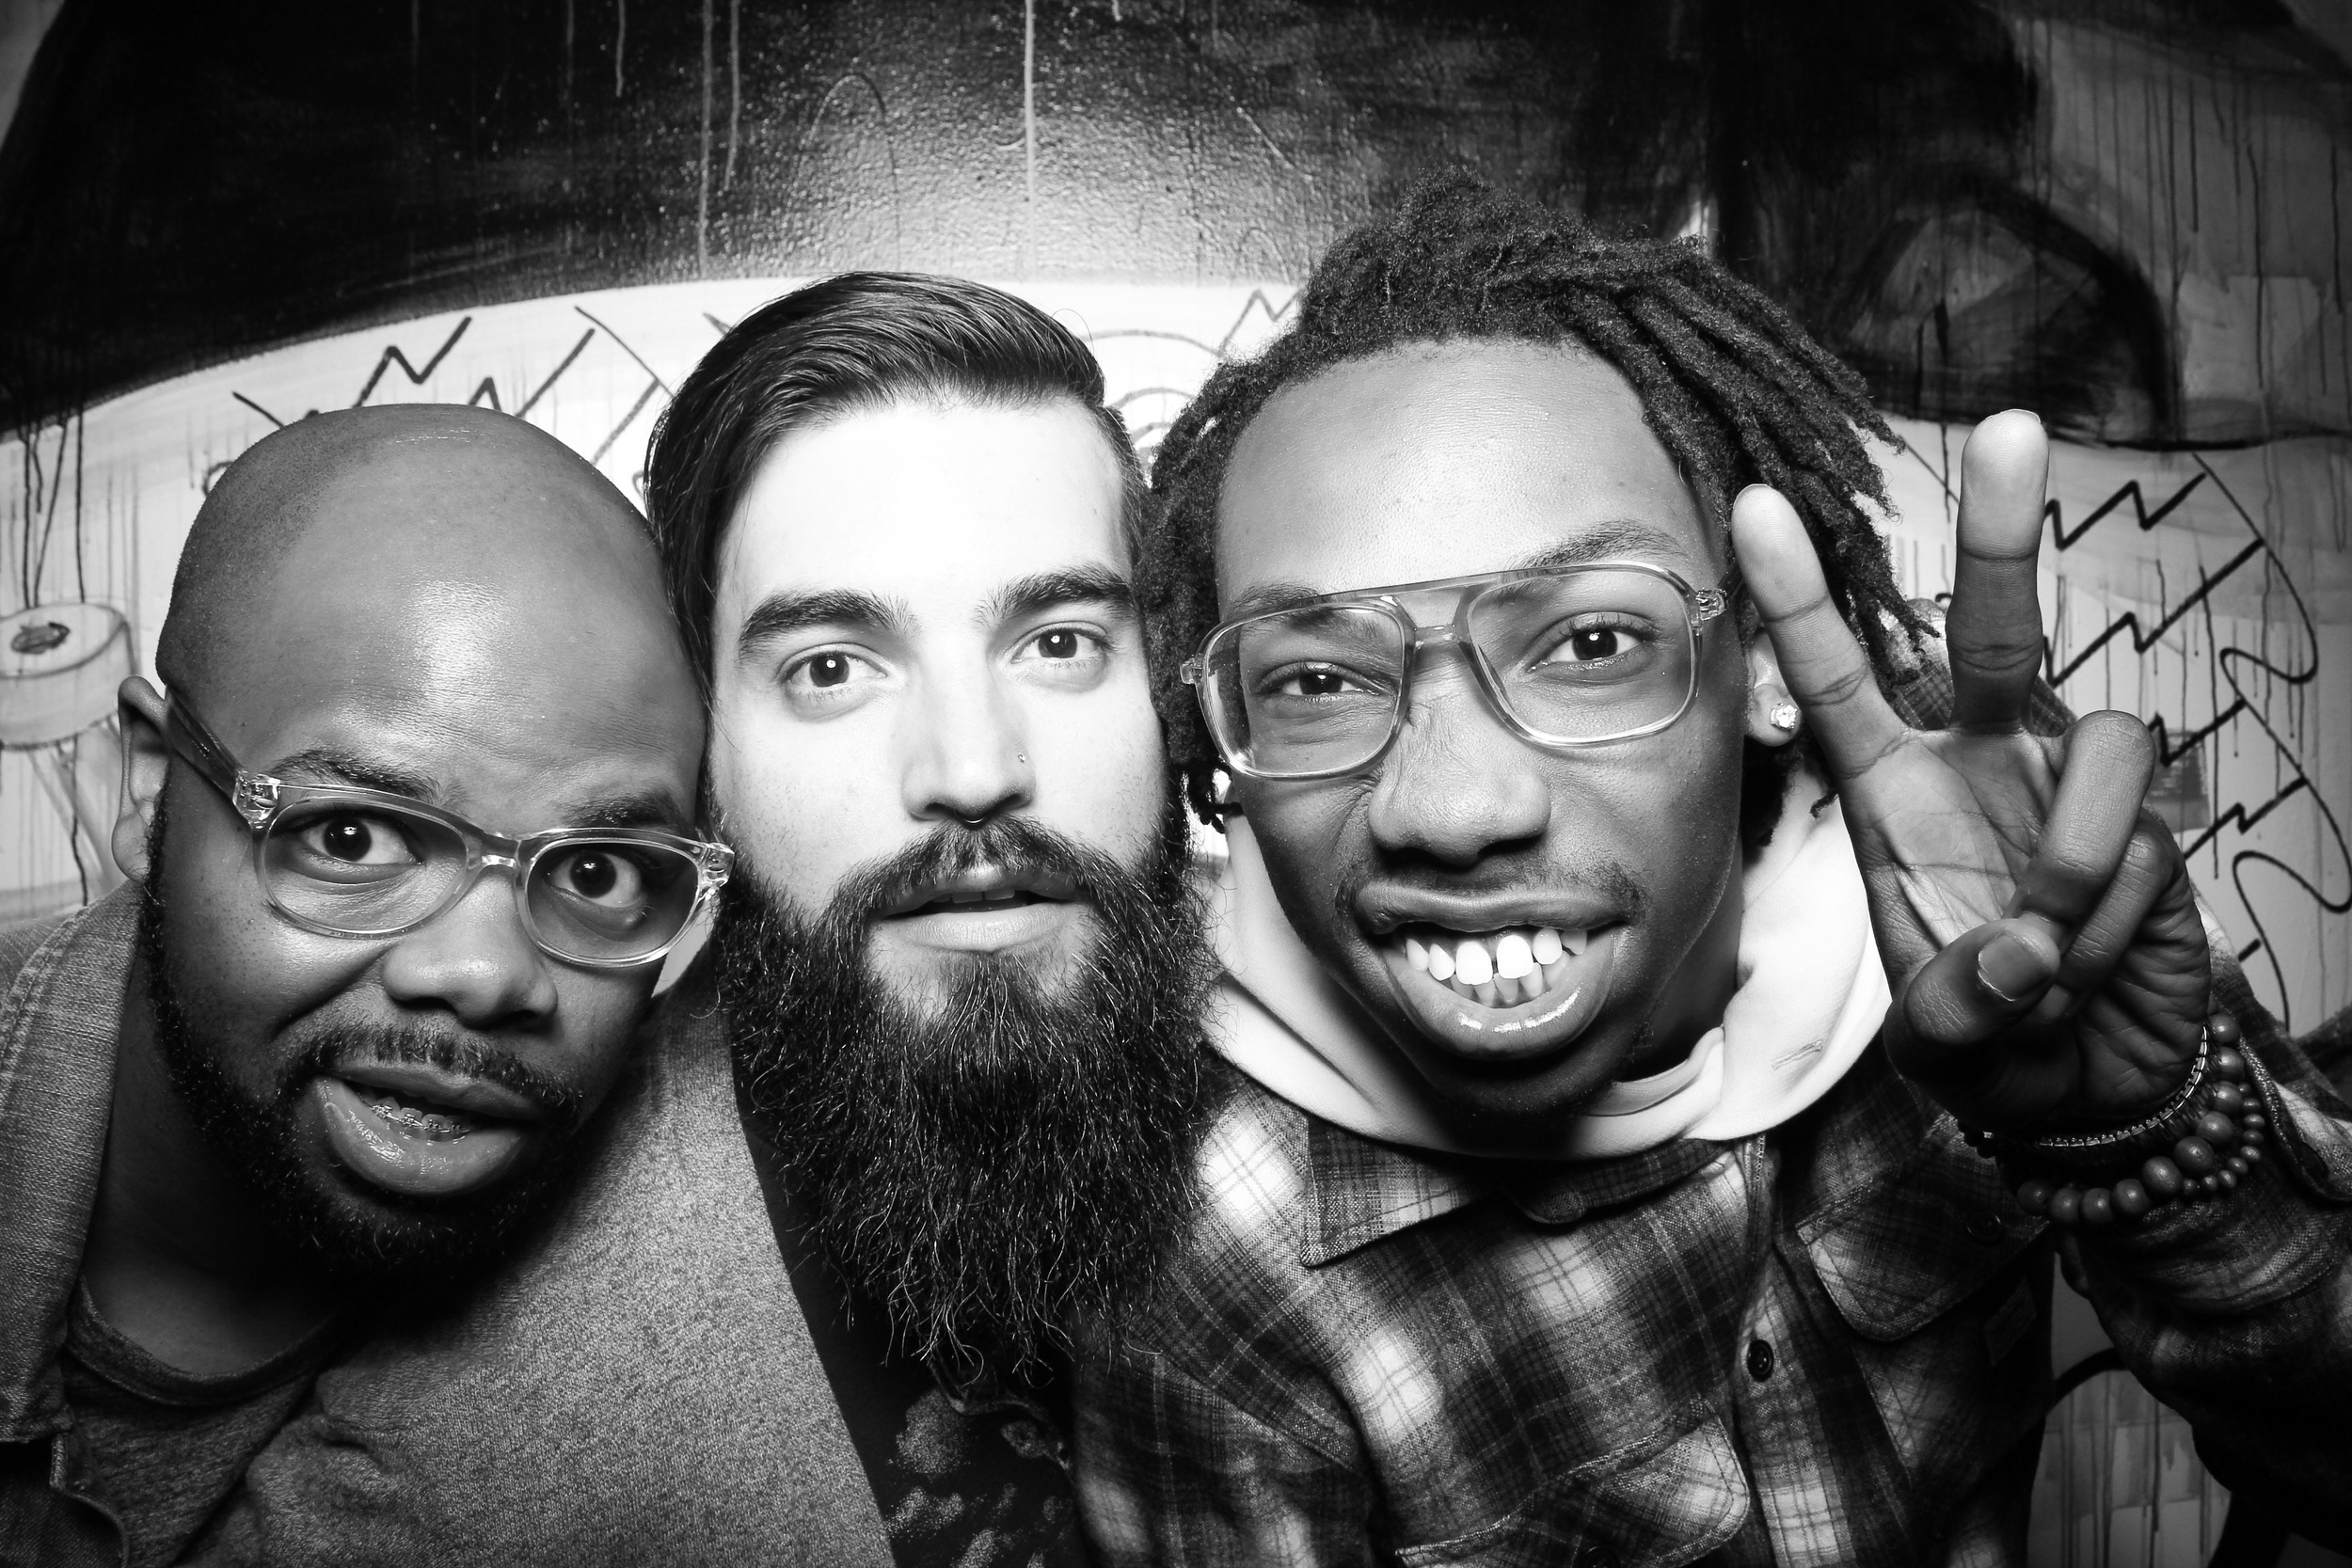 Having a blast with Fotio Photo Booth at Locallective in Wicker Park on Milwaukee Ave!